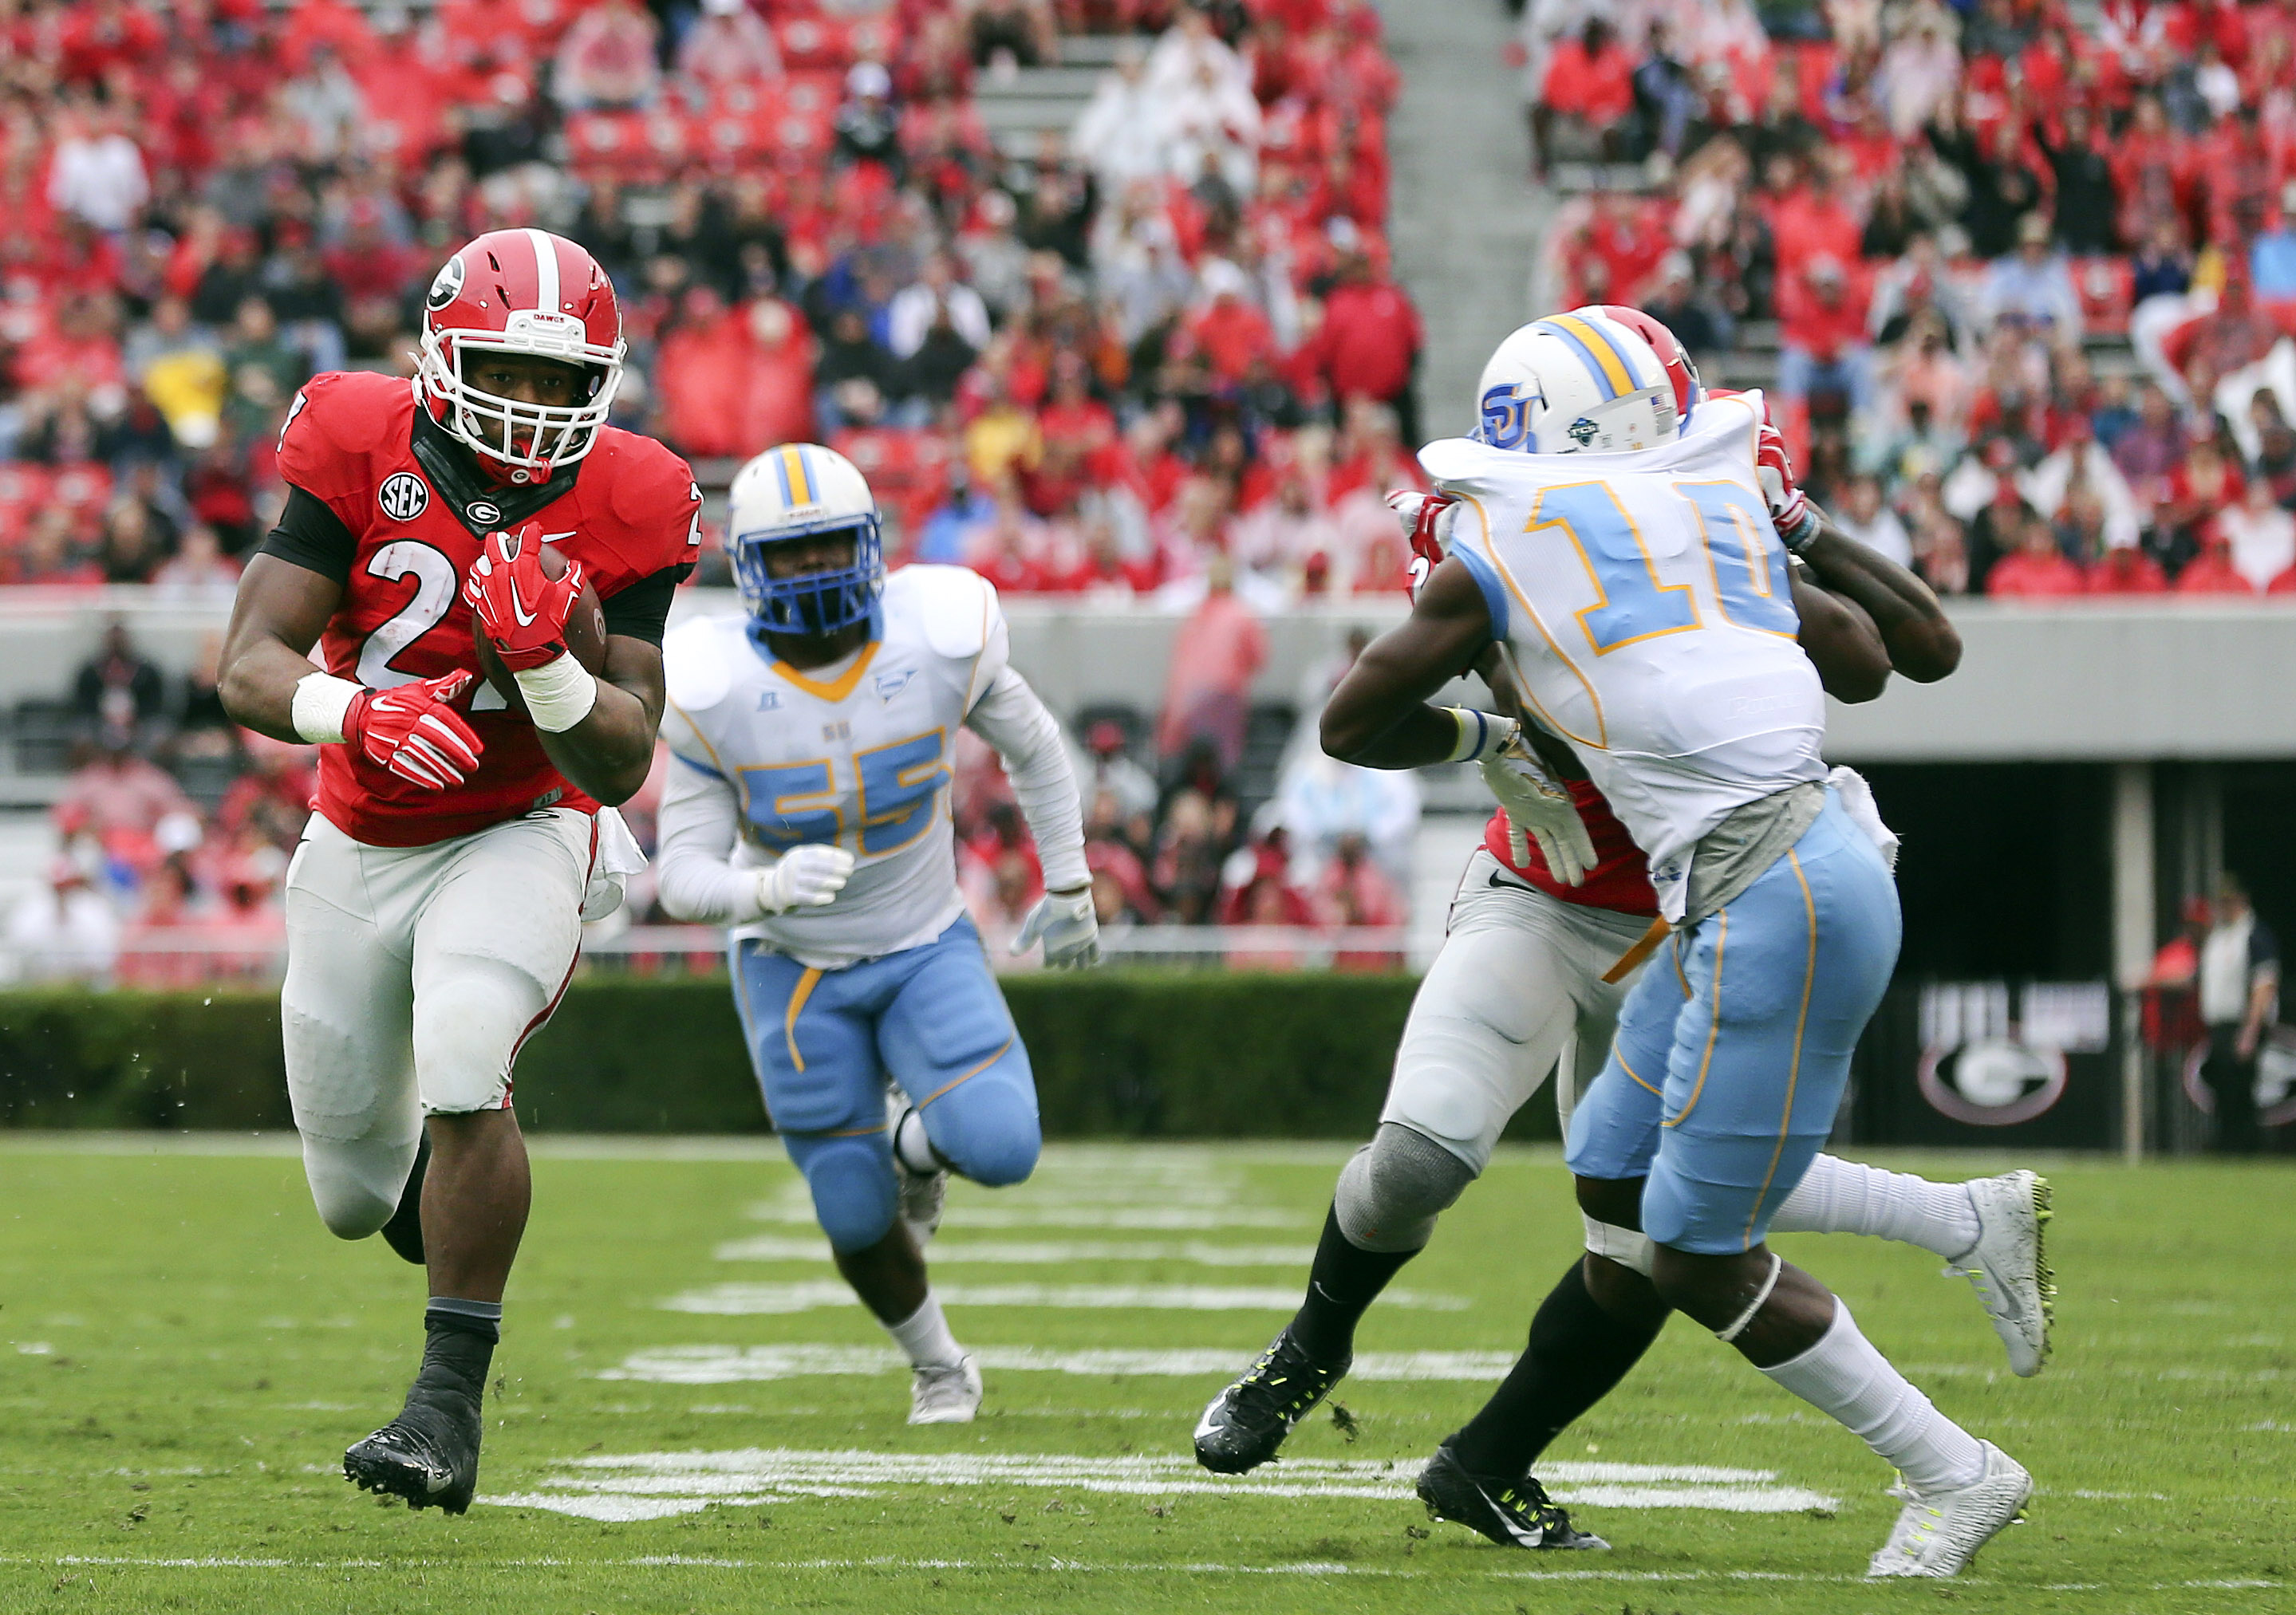 Georgia running back Nick Chubb (27) runs away from Southern's Kentavious Preston (55) and  Danny Johnson (10) for a touchdown in the first half of an NCAA college football game  Saturday, Sept. 26, 2015, in Athens , Ga. (AP Photo/John Bazemore)